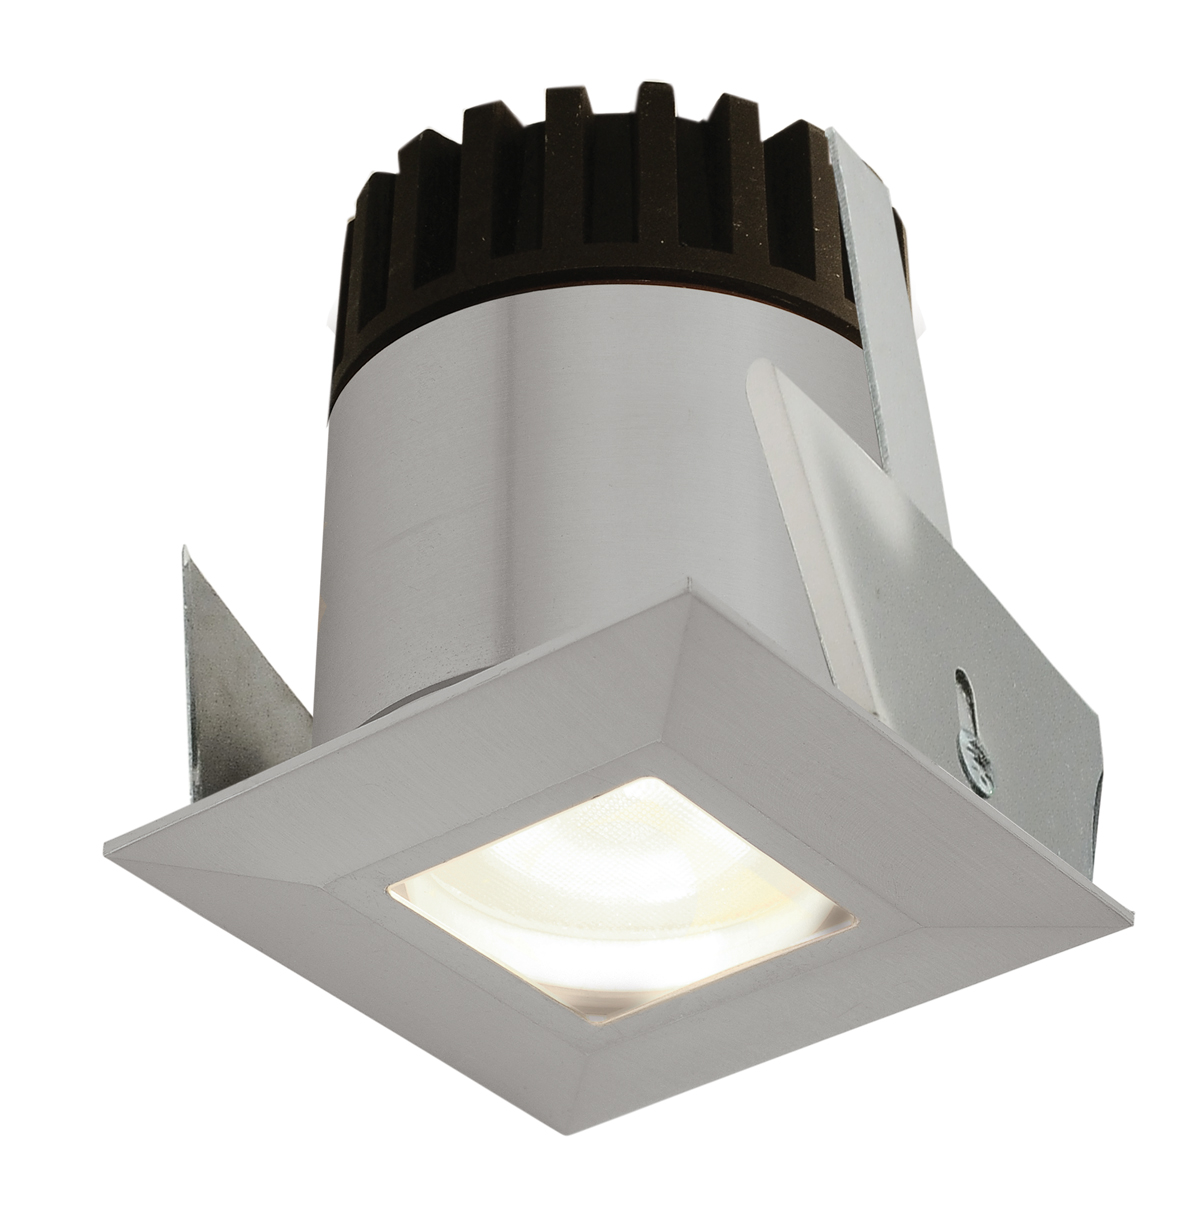 fixture retrofit and led aglaia lt ceilings ceiling product white with light cool downlight lights recessed lighting